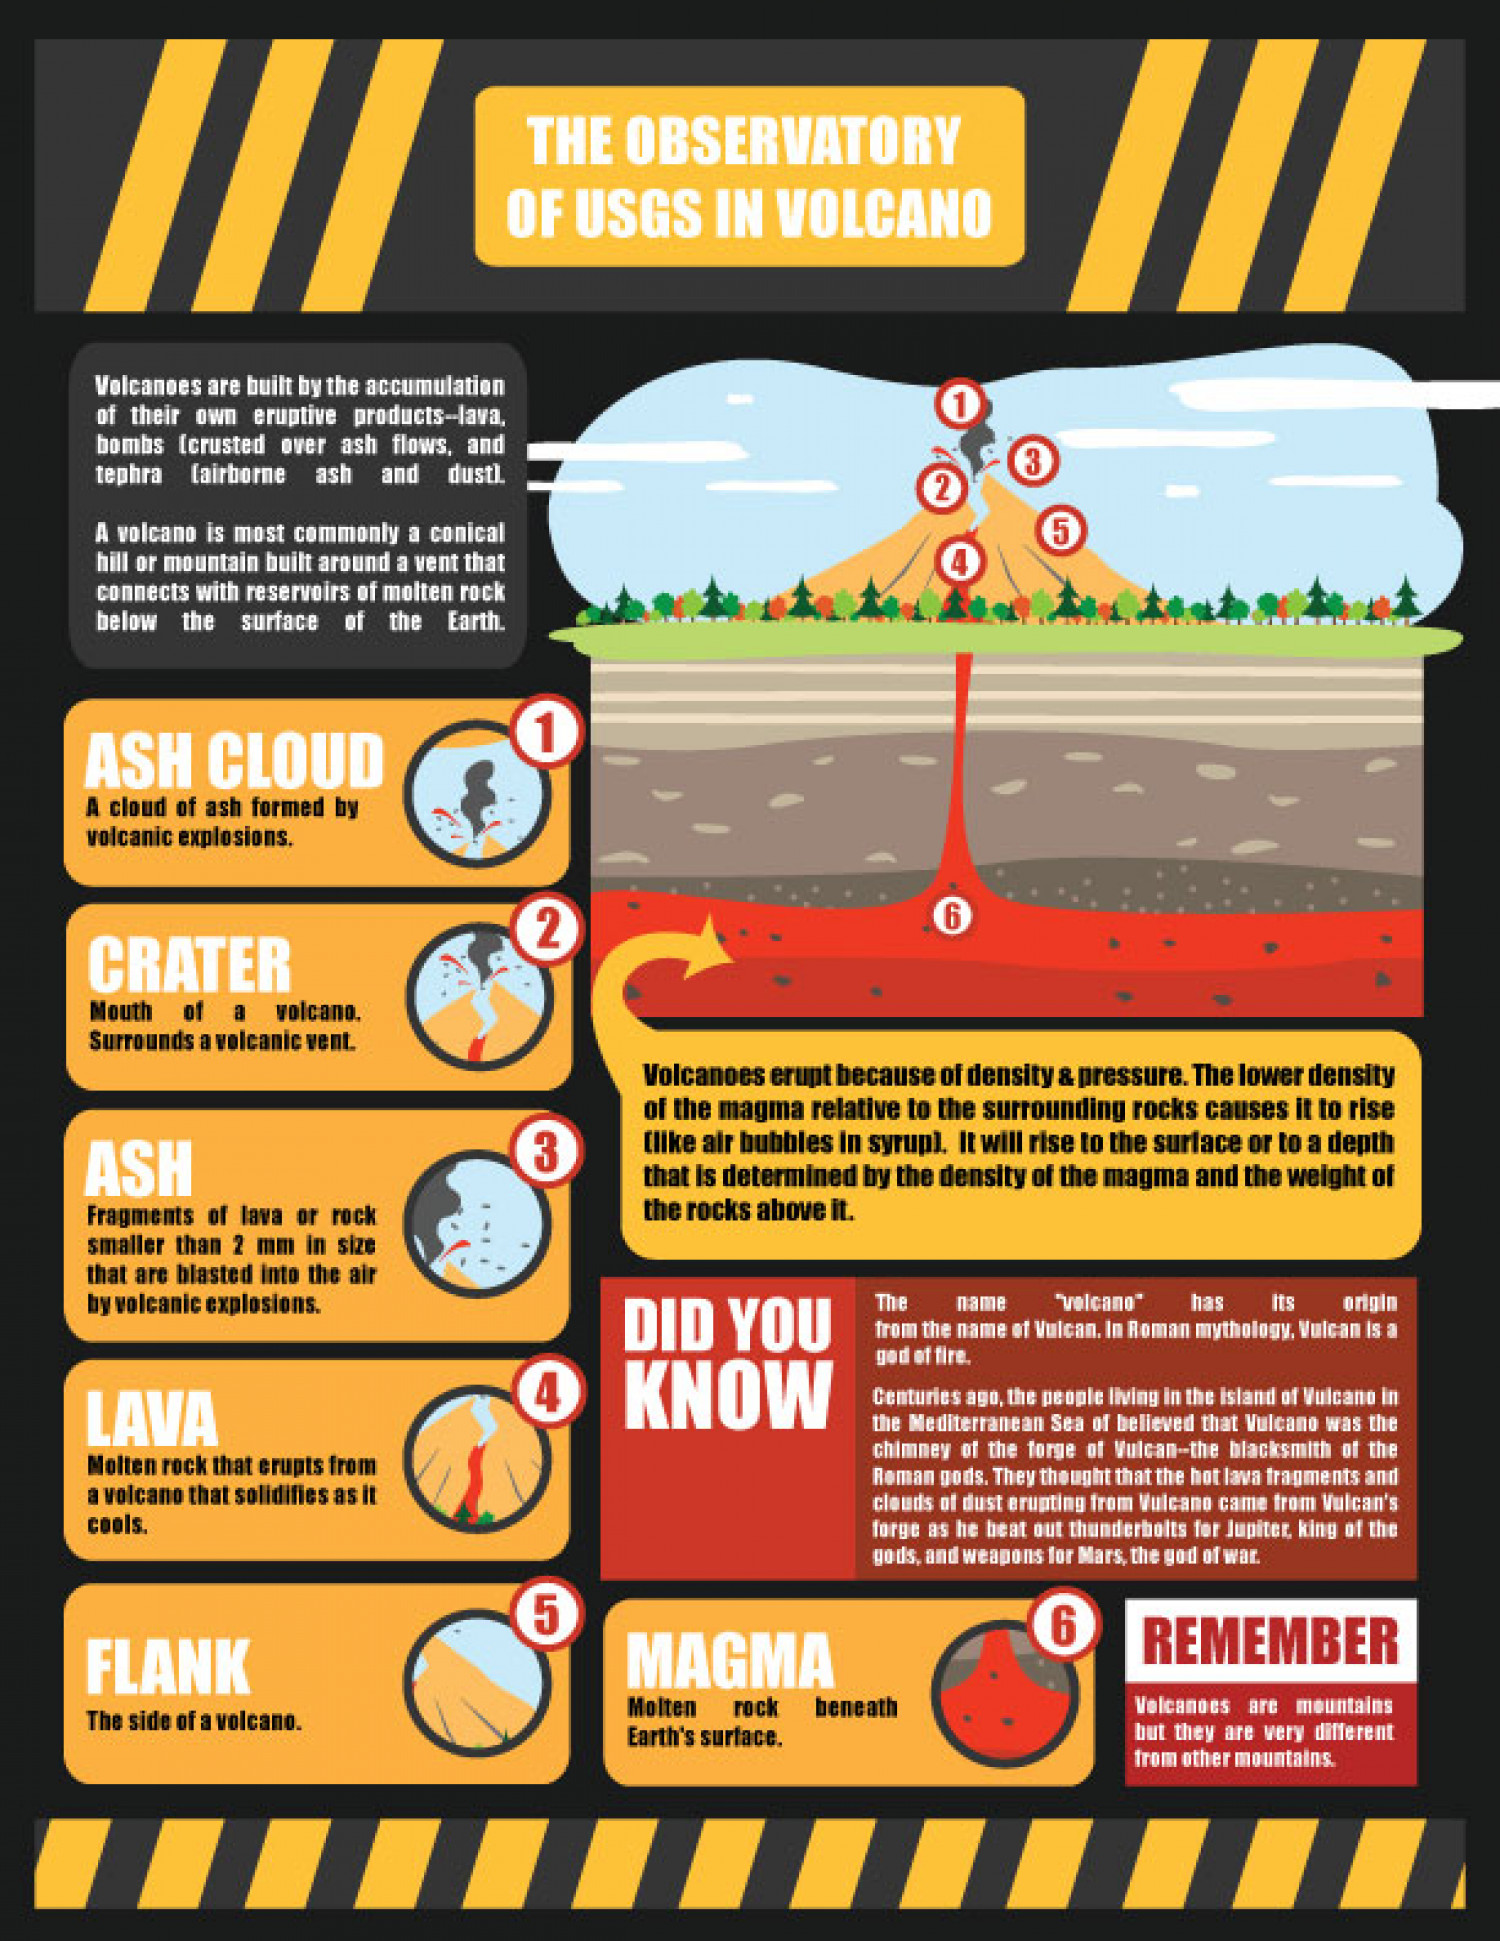 The Observatory Of USGS in Volcanoes Infographic